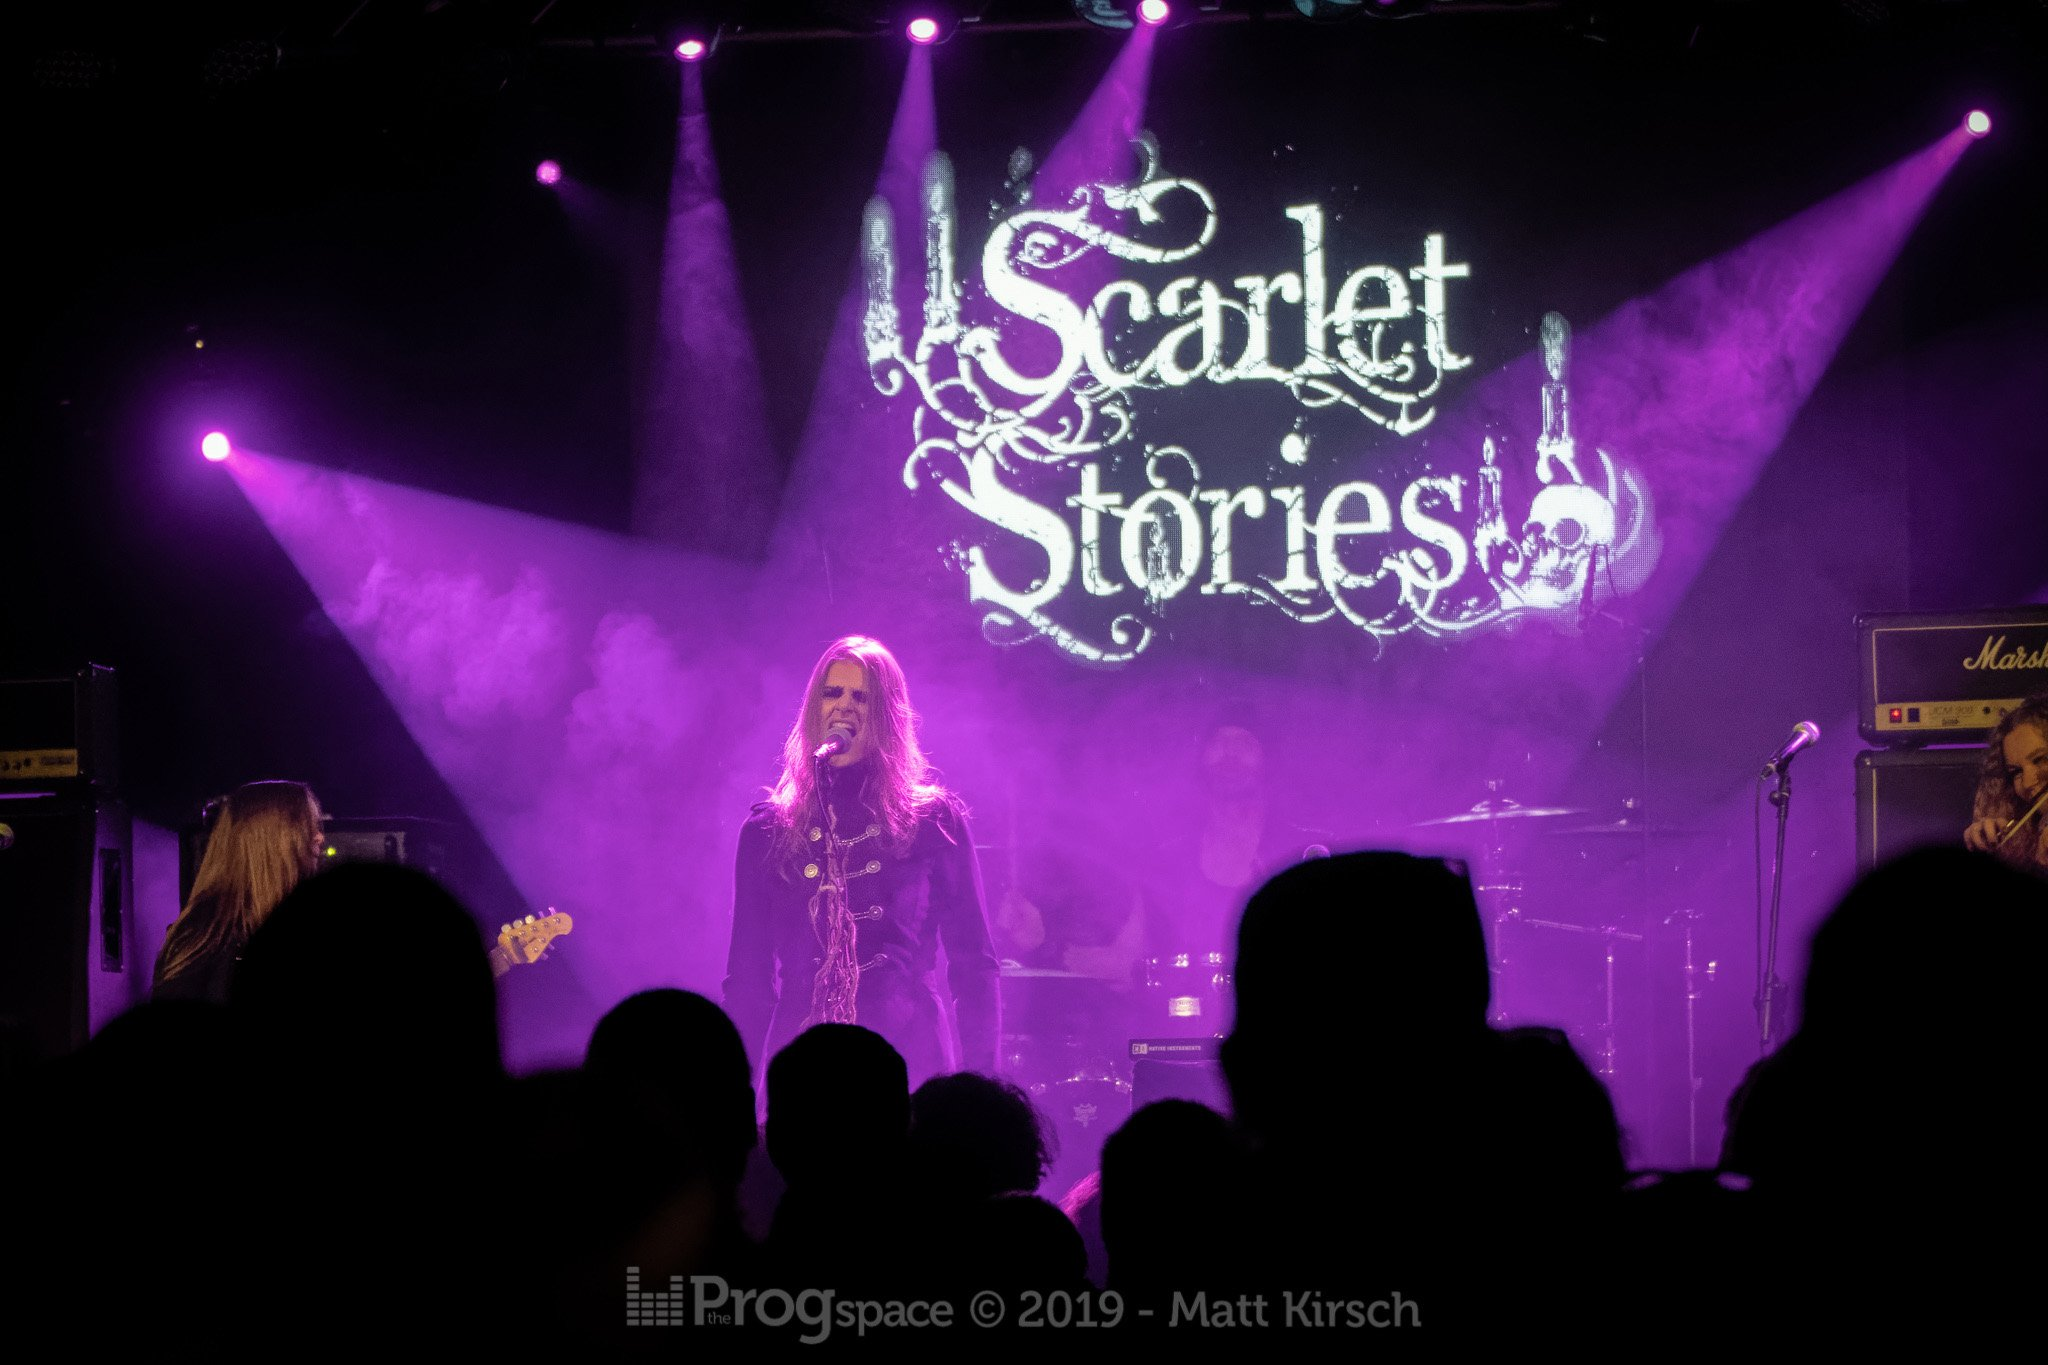 Progpower Europe 2019: Scarlet Stories